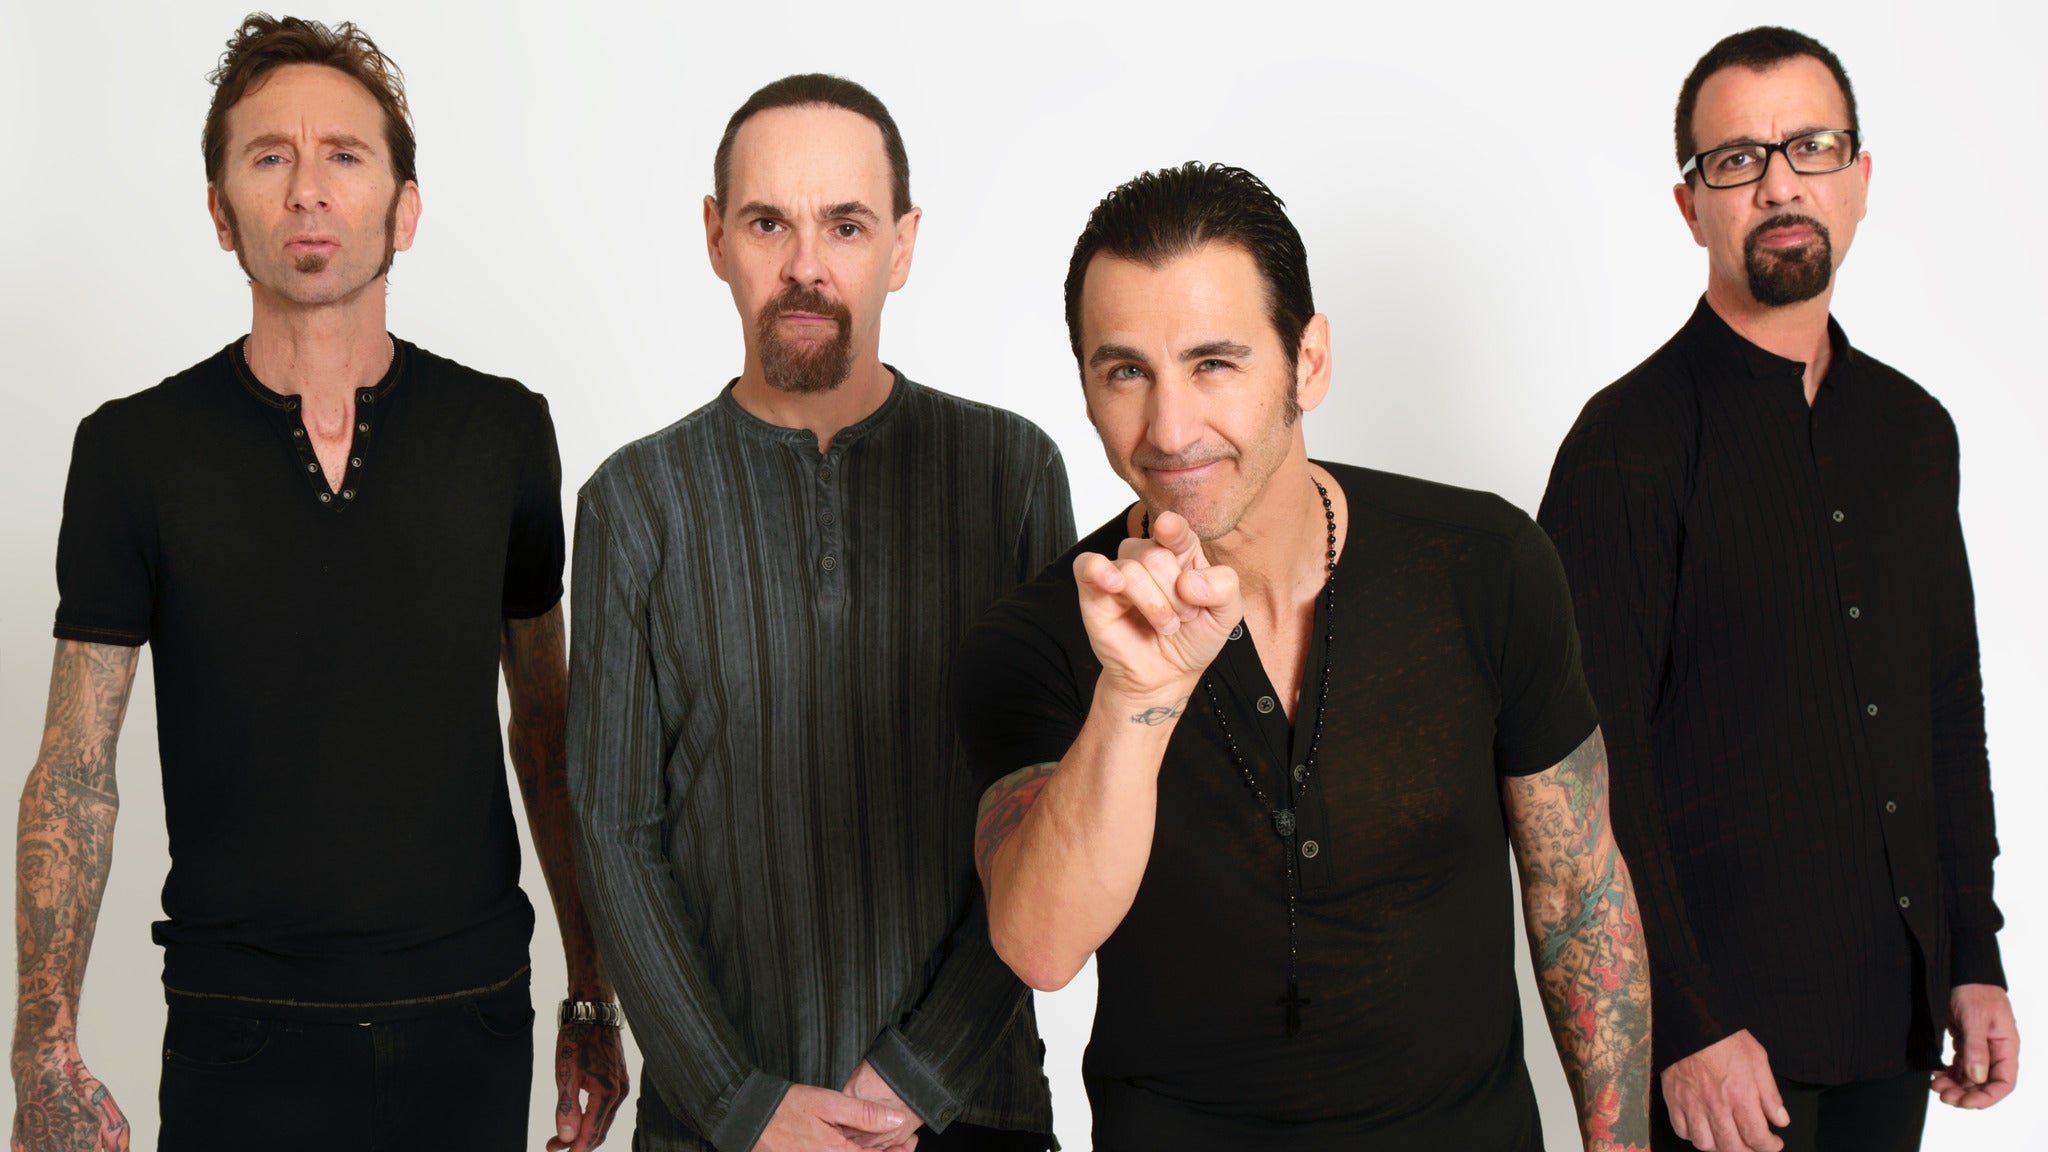 Godsmack / Shinedown - The Rocket 95.1 Birthday Bash